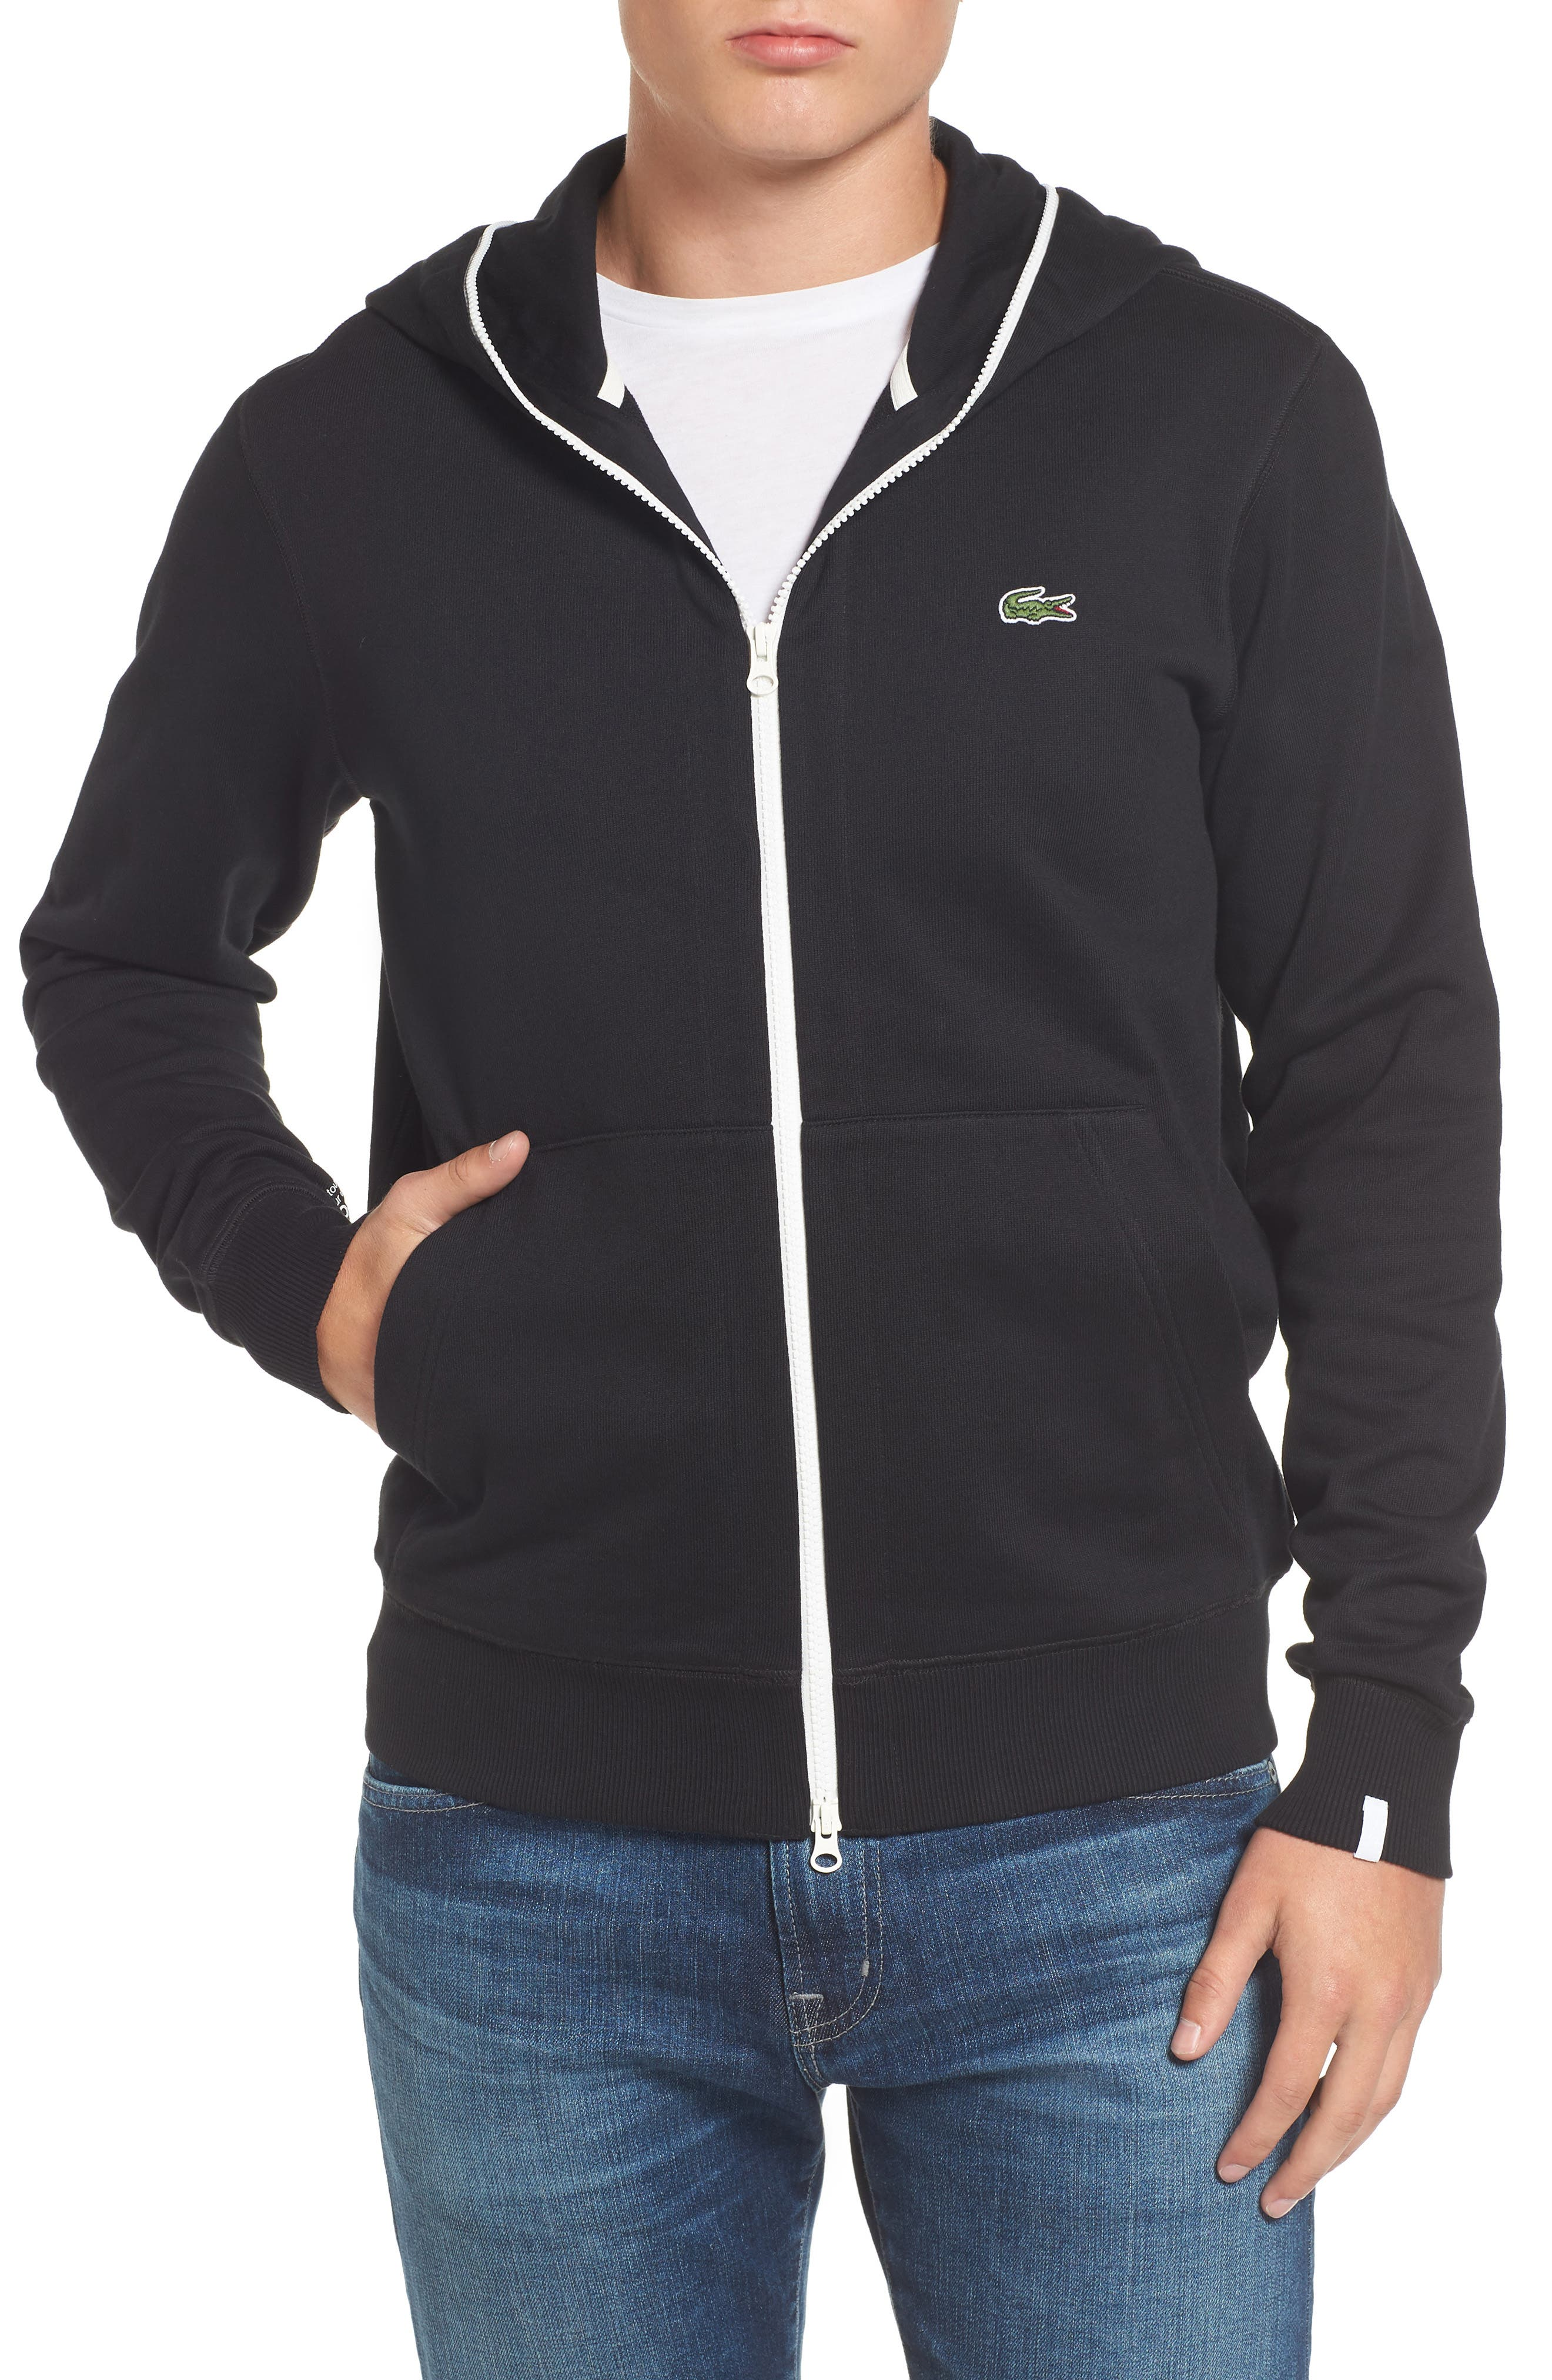 Lacoste Fleece Zip Sweatshirt